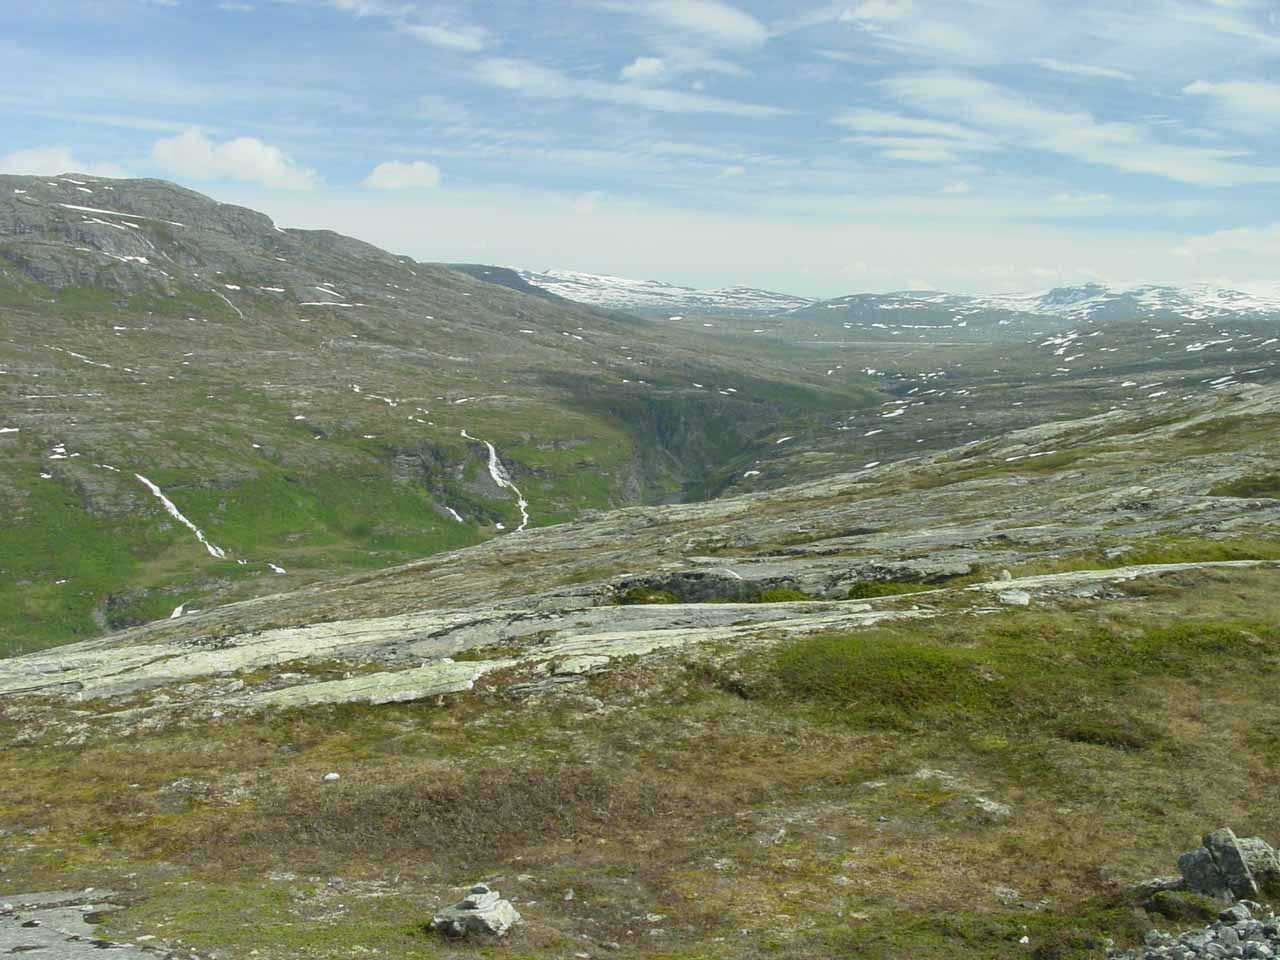 We still saw a few more waterfalls further down at the head of Eikesdalen as we went further up Aursjøvegen